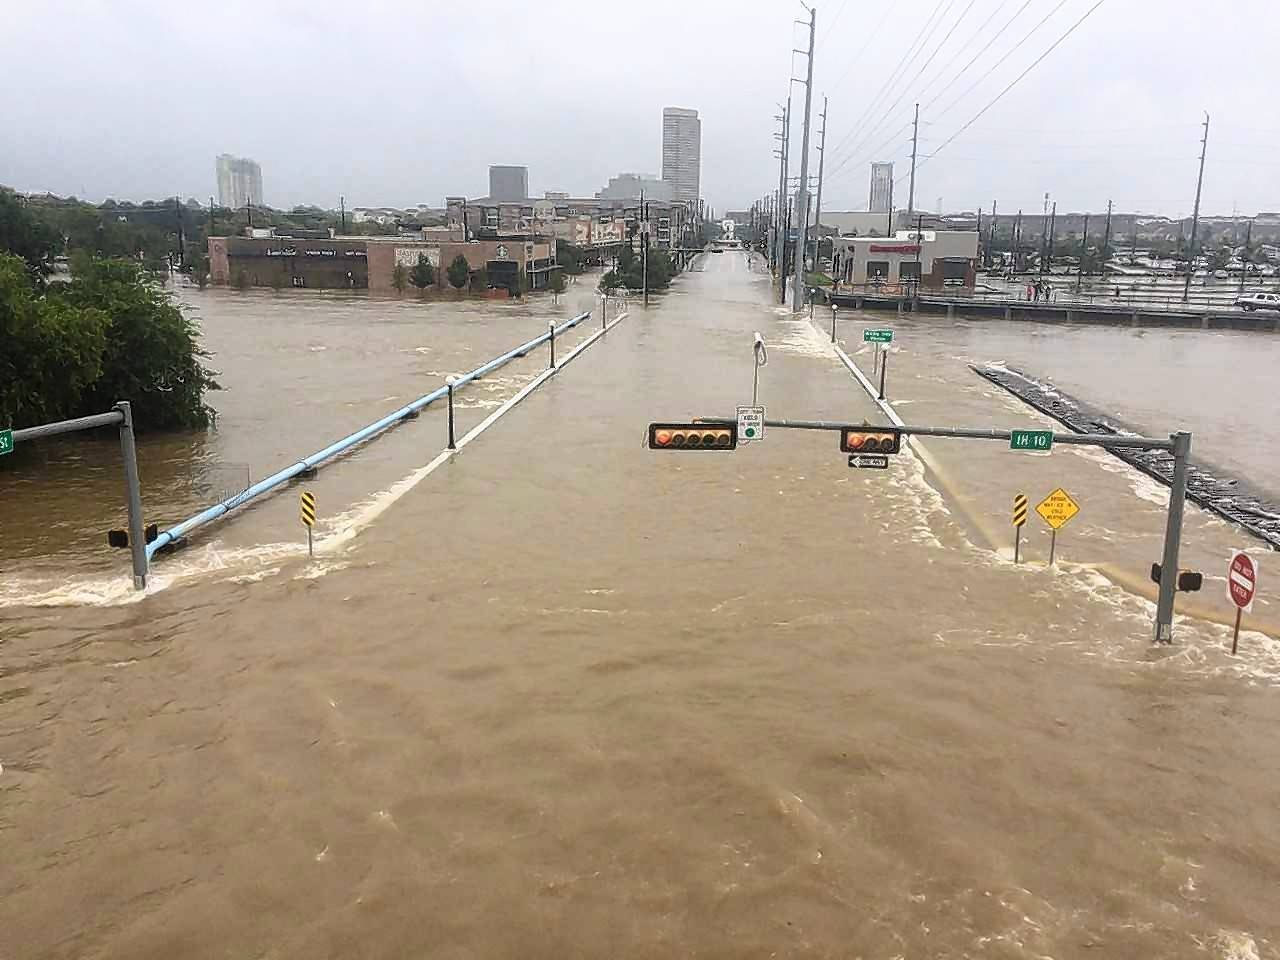 Houston Press reporter Meagan Flynn, a 2011 graduate of Huntley High School, took pictures of severe flooding about a block or two from her Houston apartment two days after Hurricane Harvey made landfall Aug. 25.